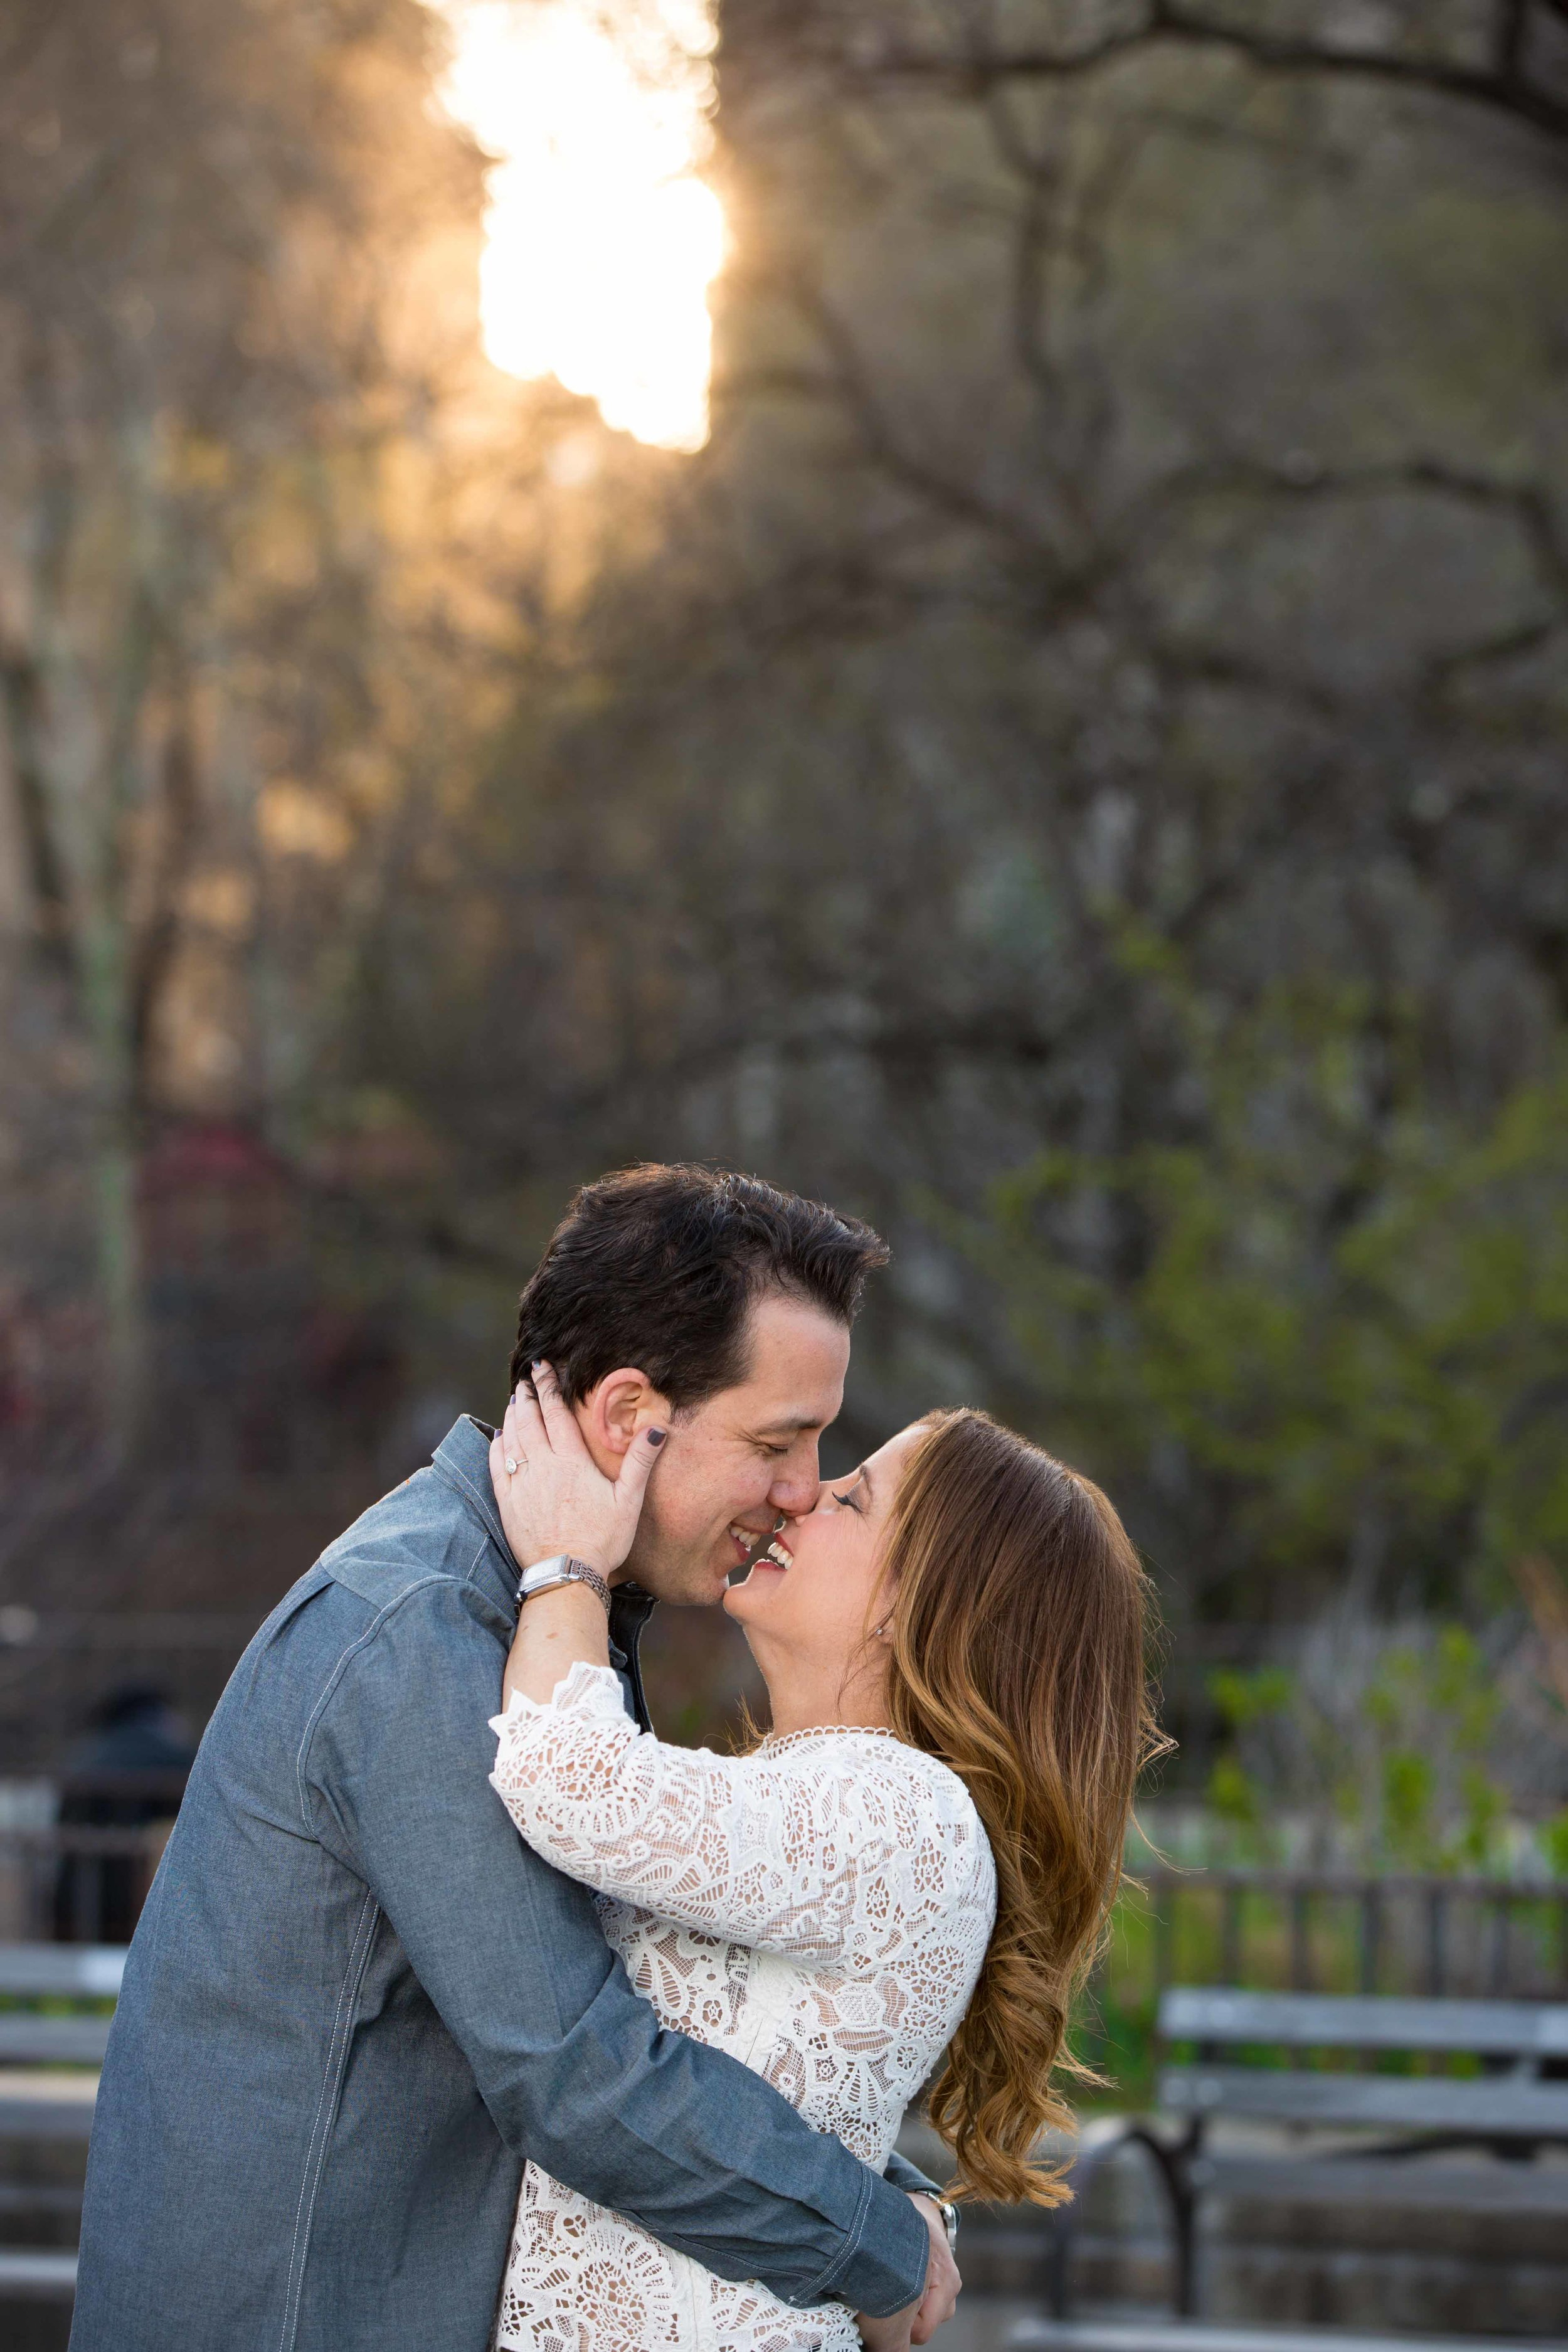 NYC Carl Schurz Park Engagement Photo Shoot Session 2.jpg